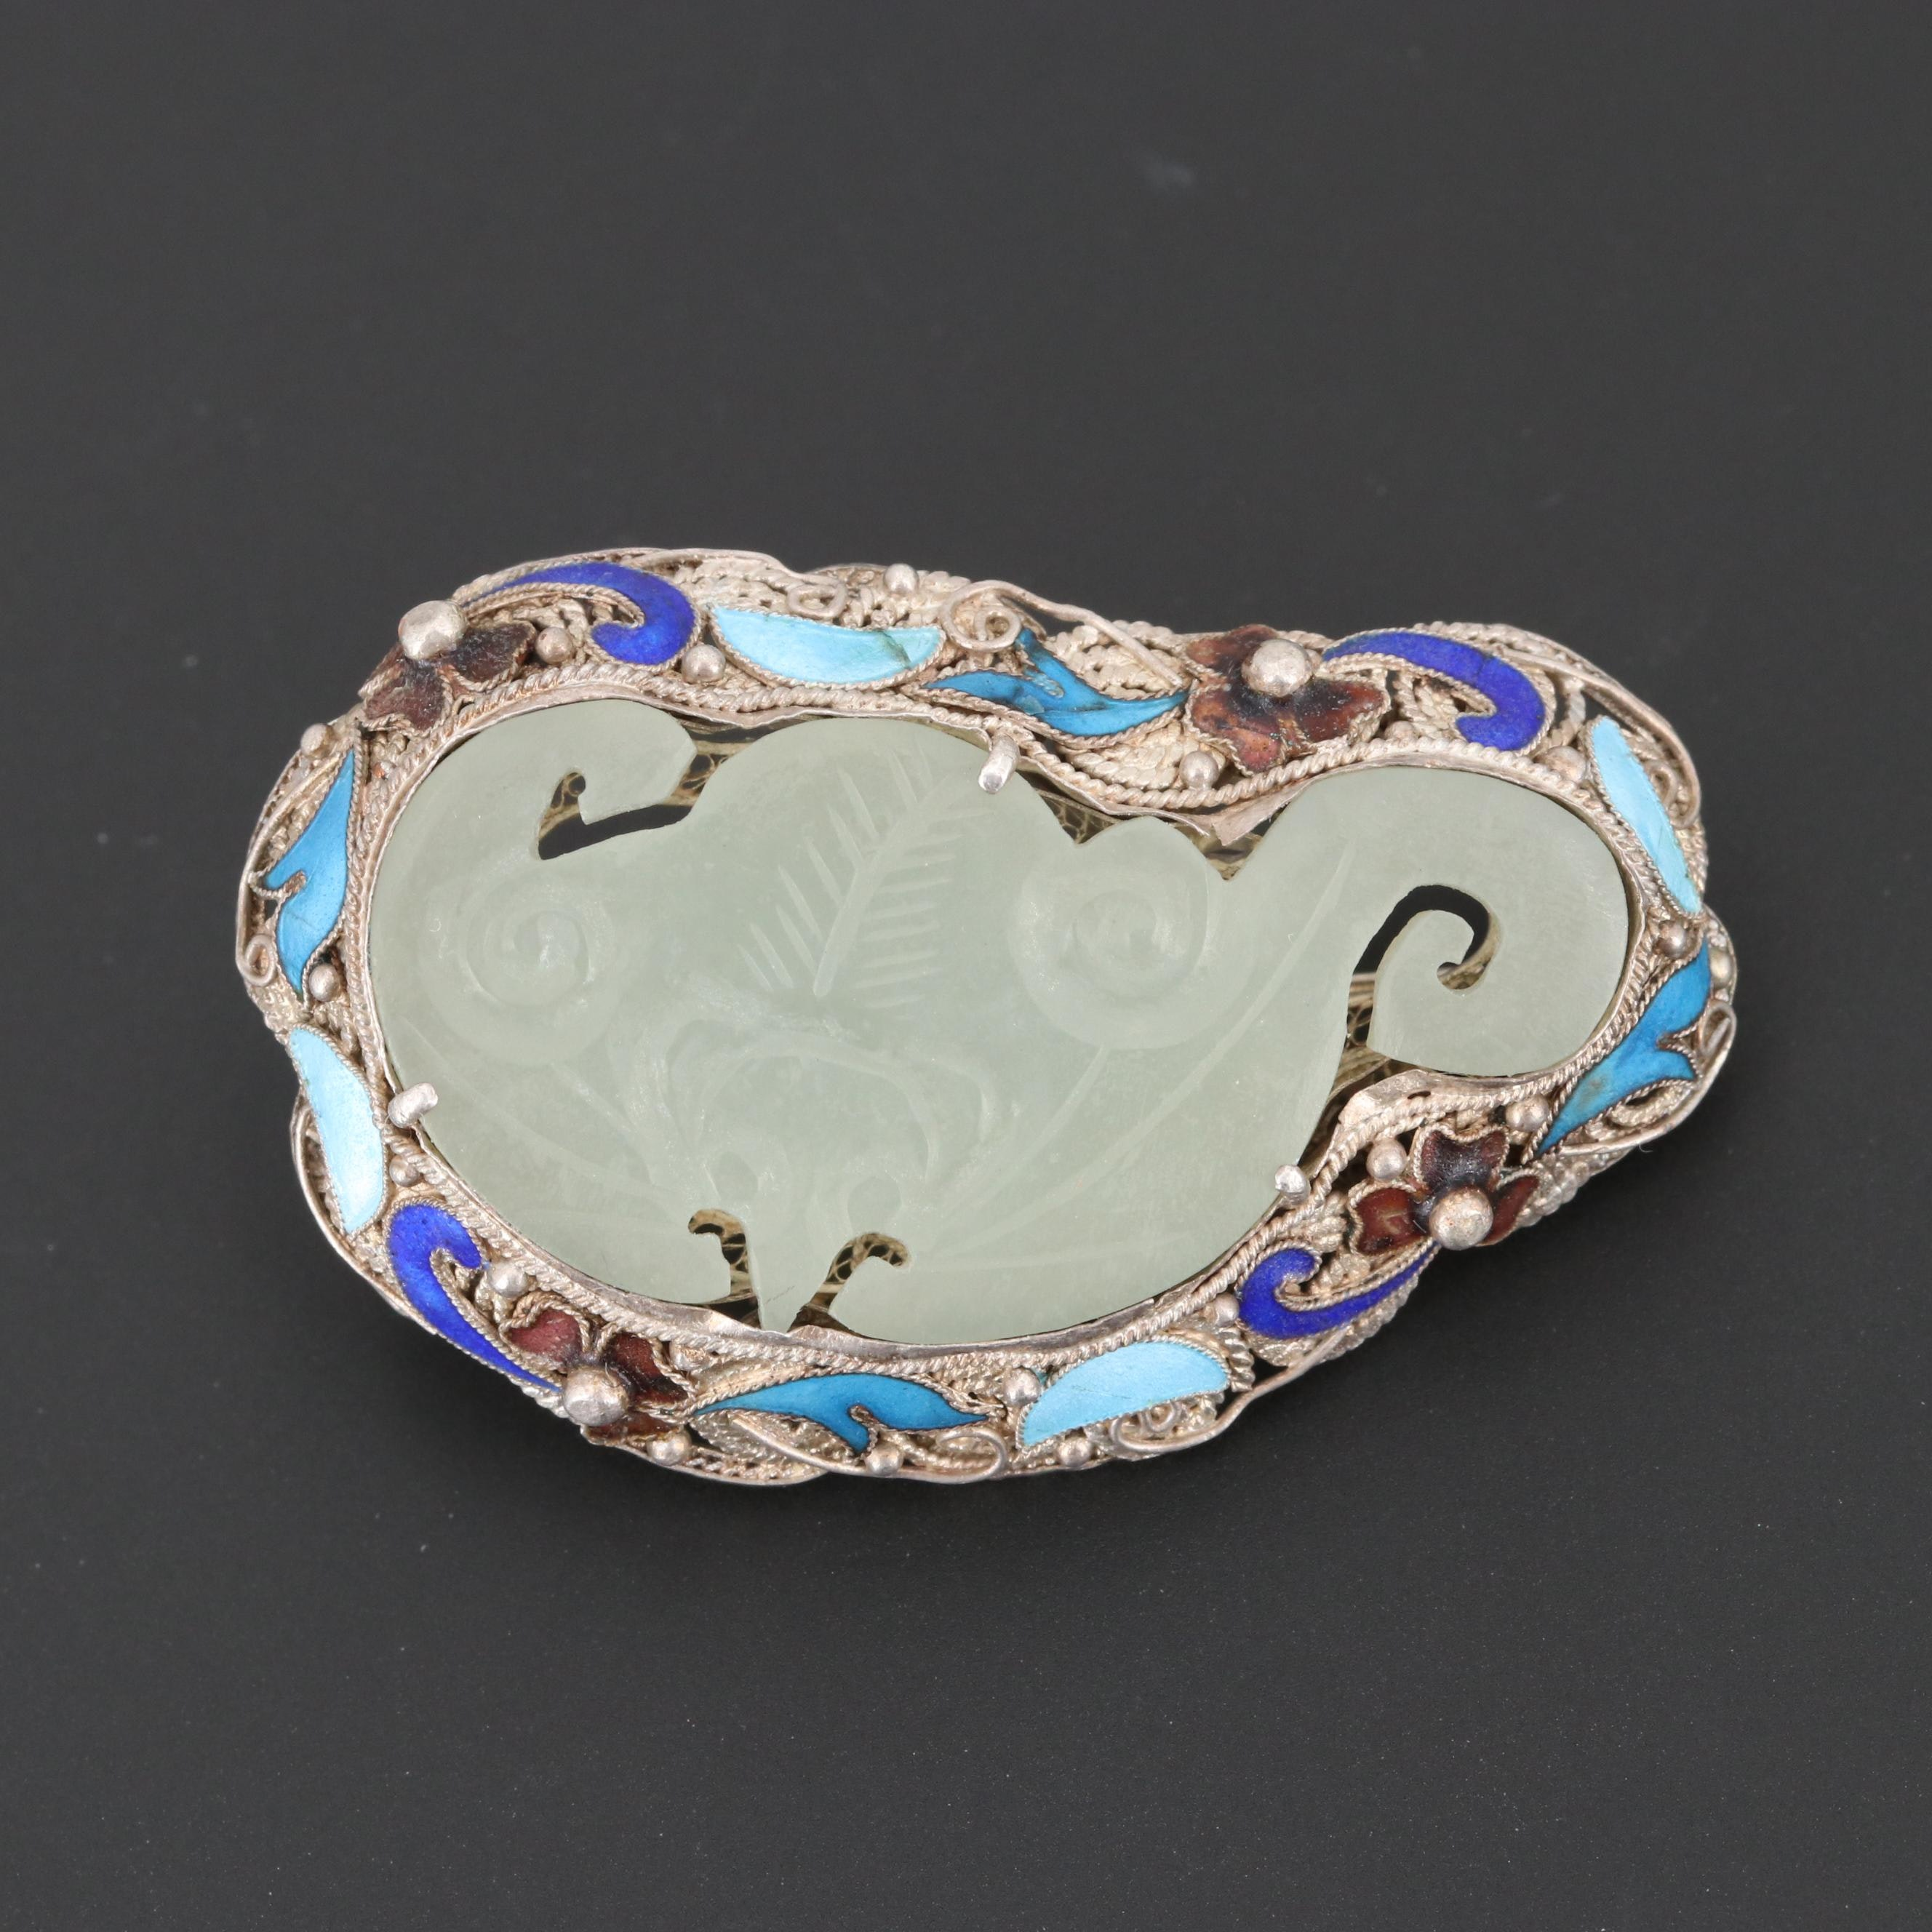 Chinese Sterling Silver Carved Nephrite Bat Brooch with Enamel Accents